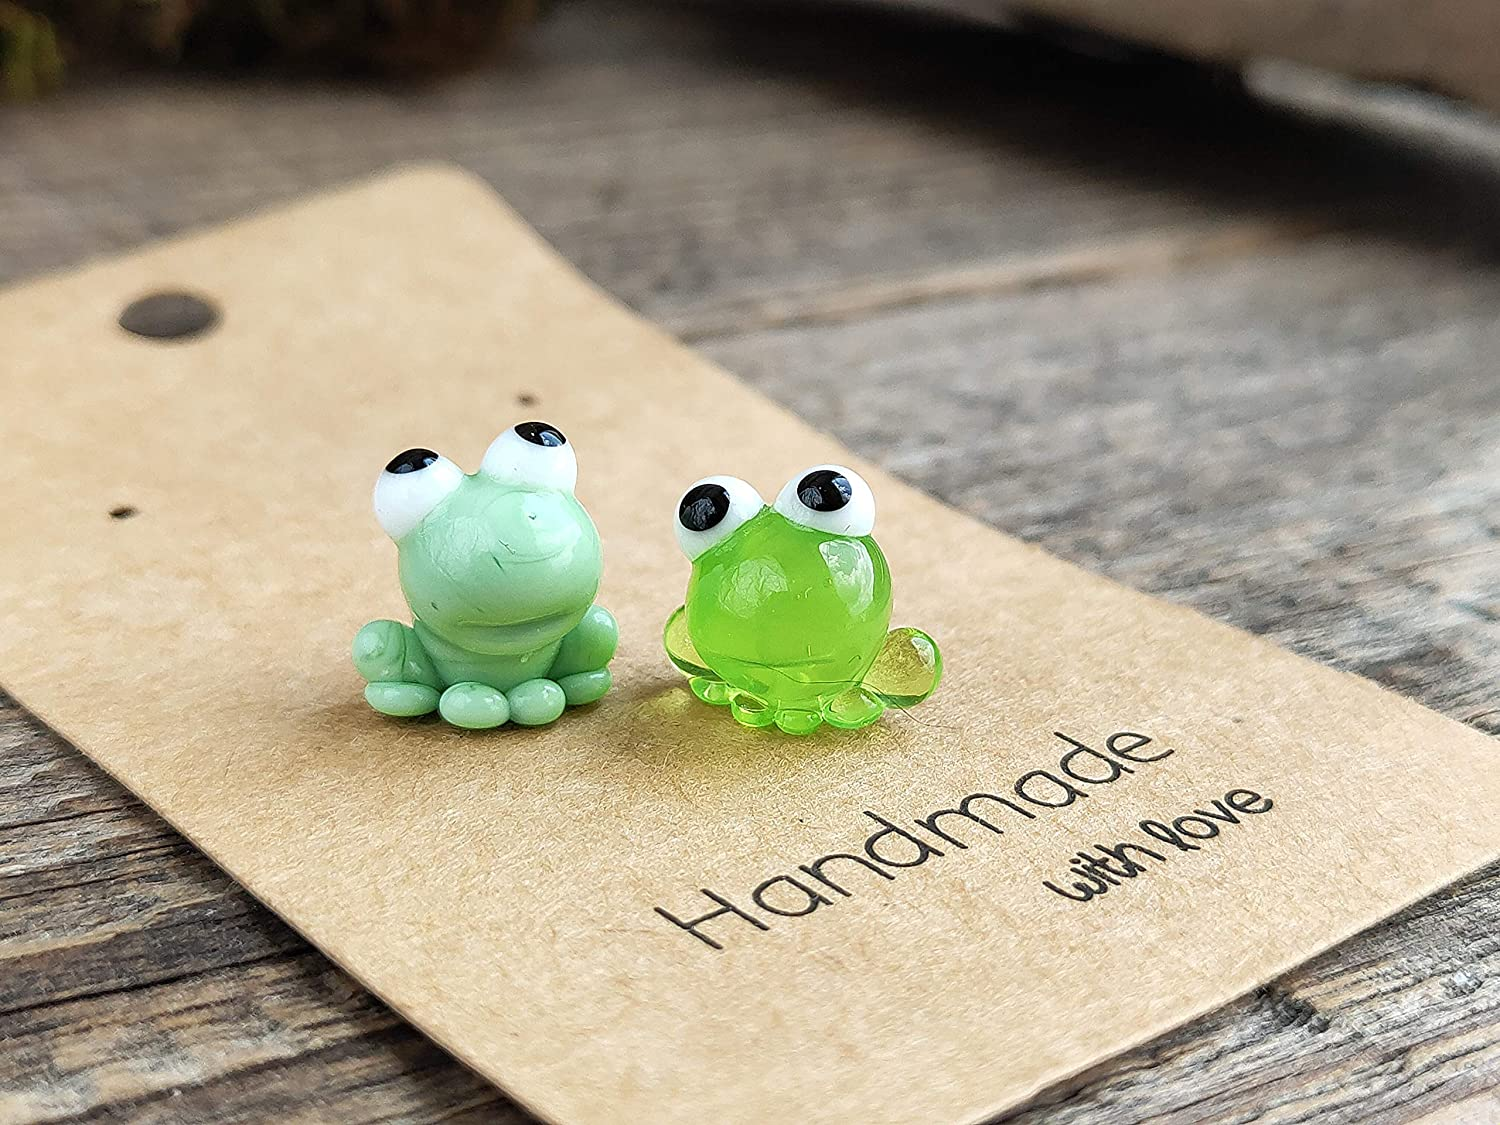 Frog gifts Frog figurine Tiny frog miniature small reptile figure Frog ornament Frog decor micro frog sculpture mini glass frog figurine